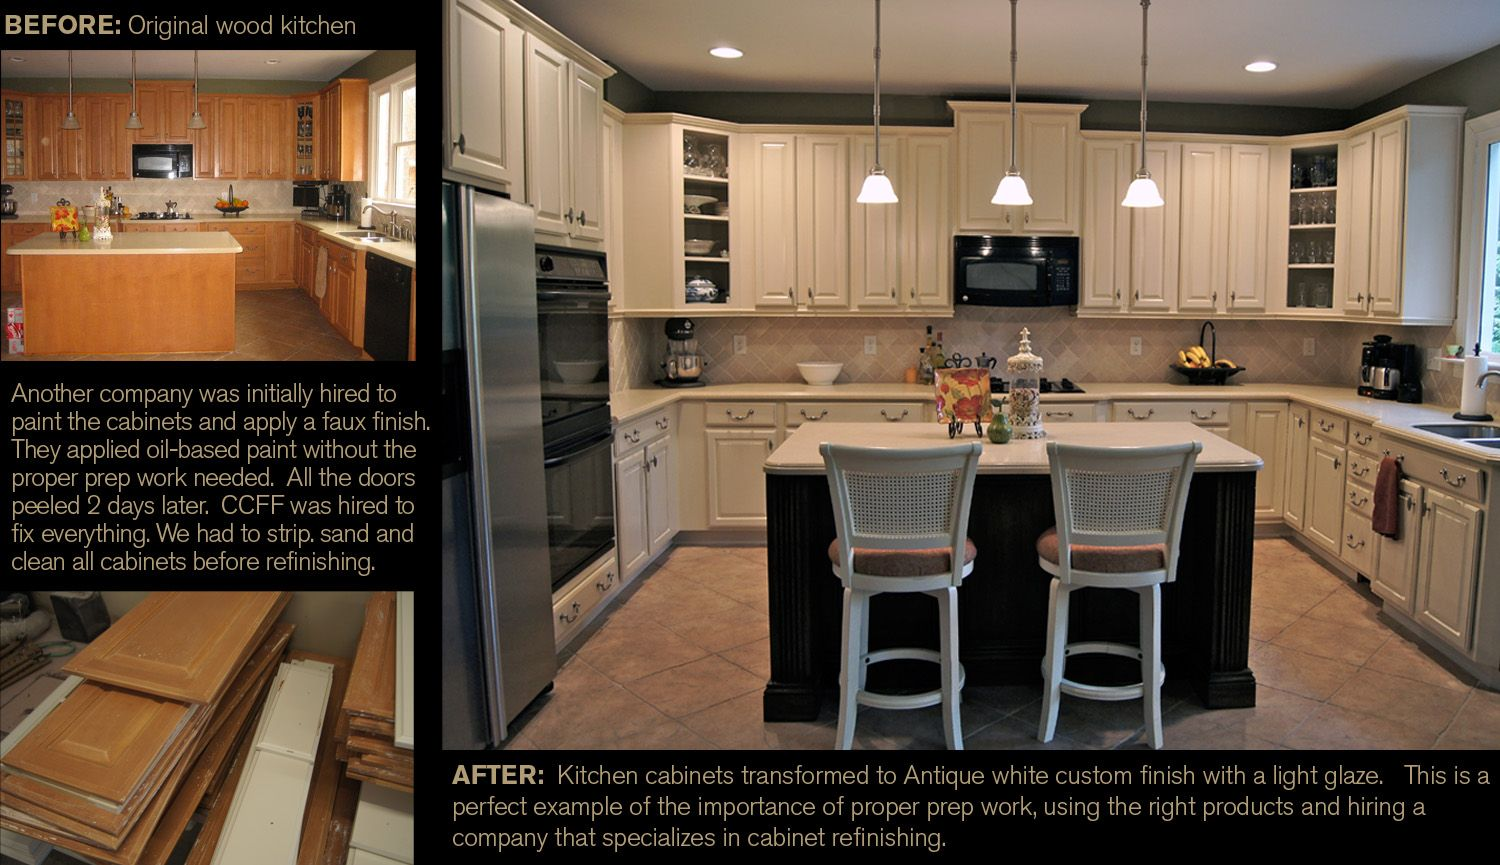 From Original Wood Cabinets To Antique White Custom Finish With A Light Glaze Another Company Was Initially Wood Cabinets Refinishing Cabinets Faux Finish